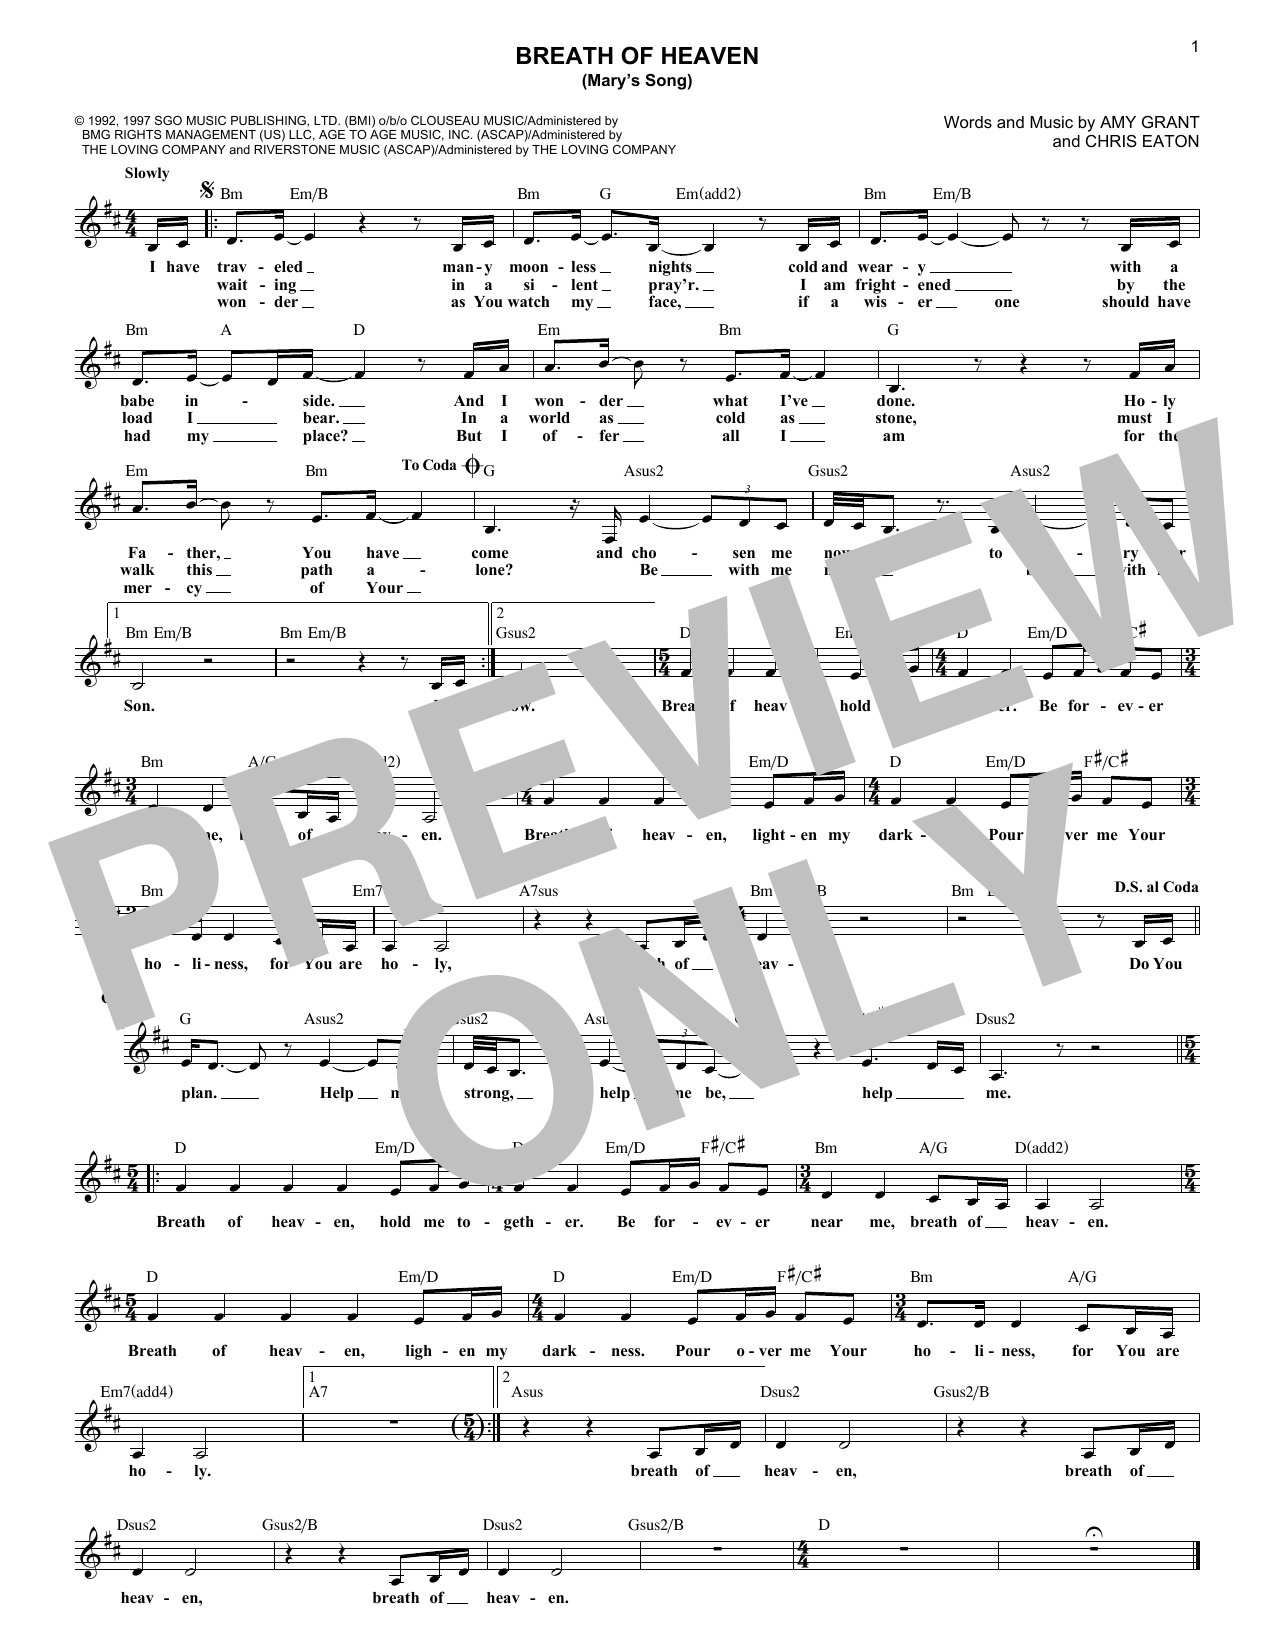 Amy Grant Breath Of Heaven (Mary's Song) sheet music notes and chords. Download Printable PDF.